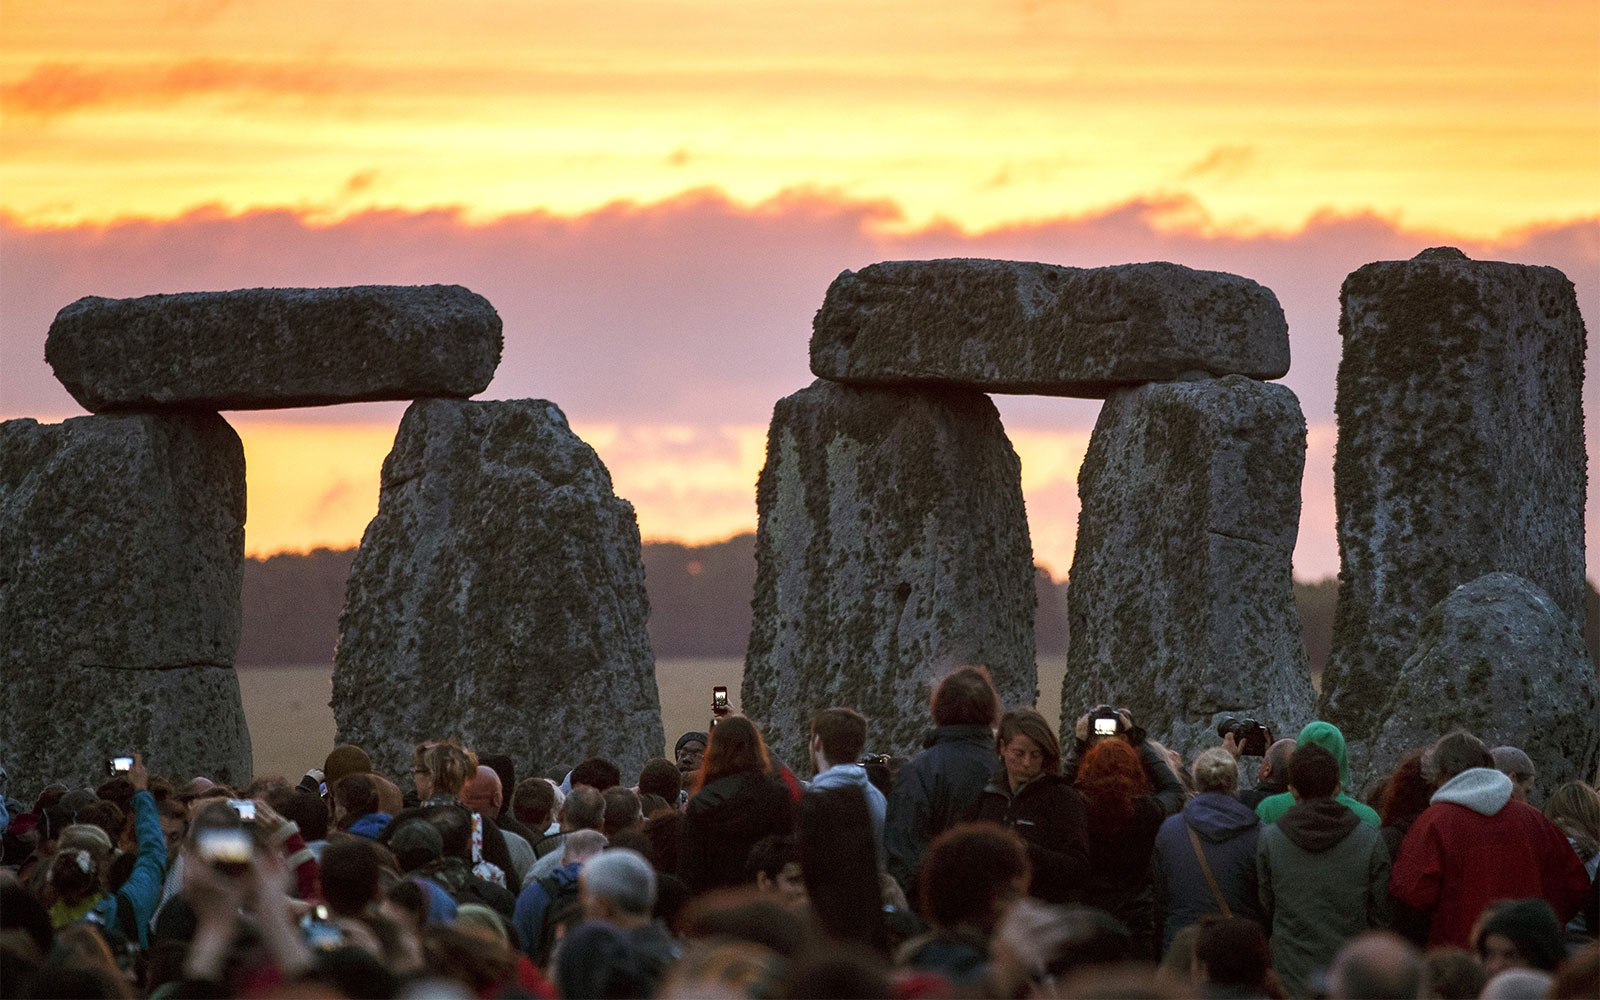 SALISBURY, UNITED KINGDOM - JUNE 21: People take photos of the Summer Solstice sunrise at Stonehenge on June 21, 2015 in Wiltshire, England. Thousands of revellers gather at the 5,000 year old stone circle in Wiltshire to see the sunrise on the Summer Solstice dawn. The solstice sunrise marks the longest day of the year in the Northern Hemisphere. (Photo by Tolga Akmen/Anadolu Agency/Getty Images)